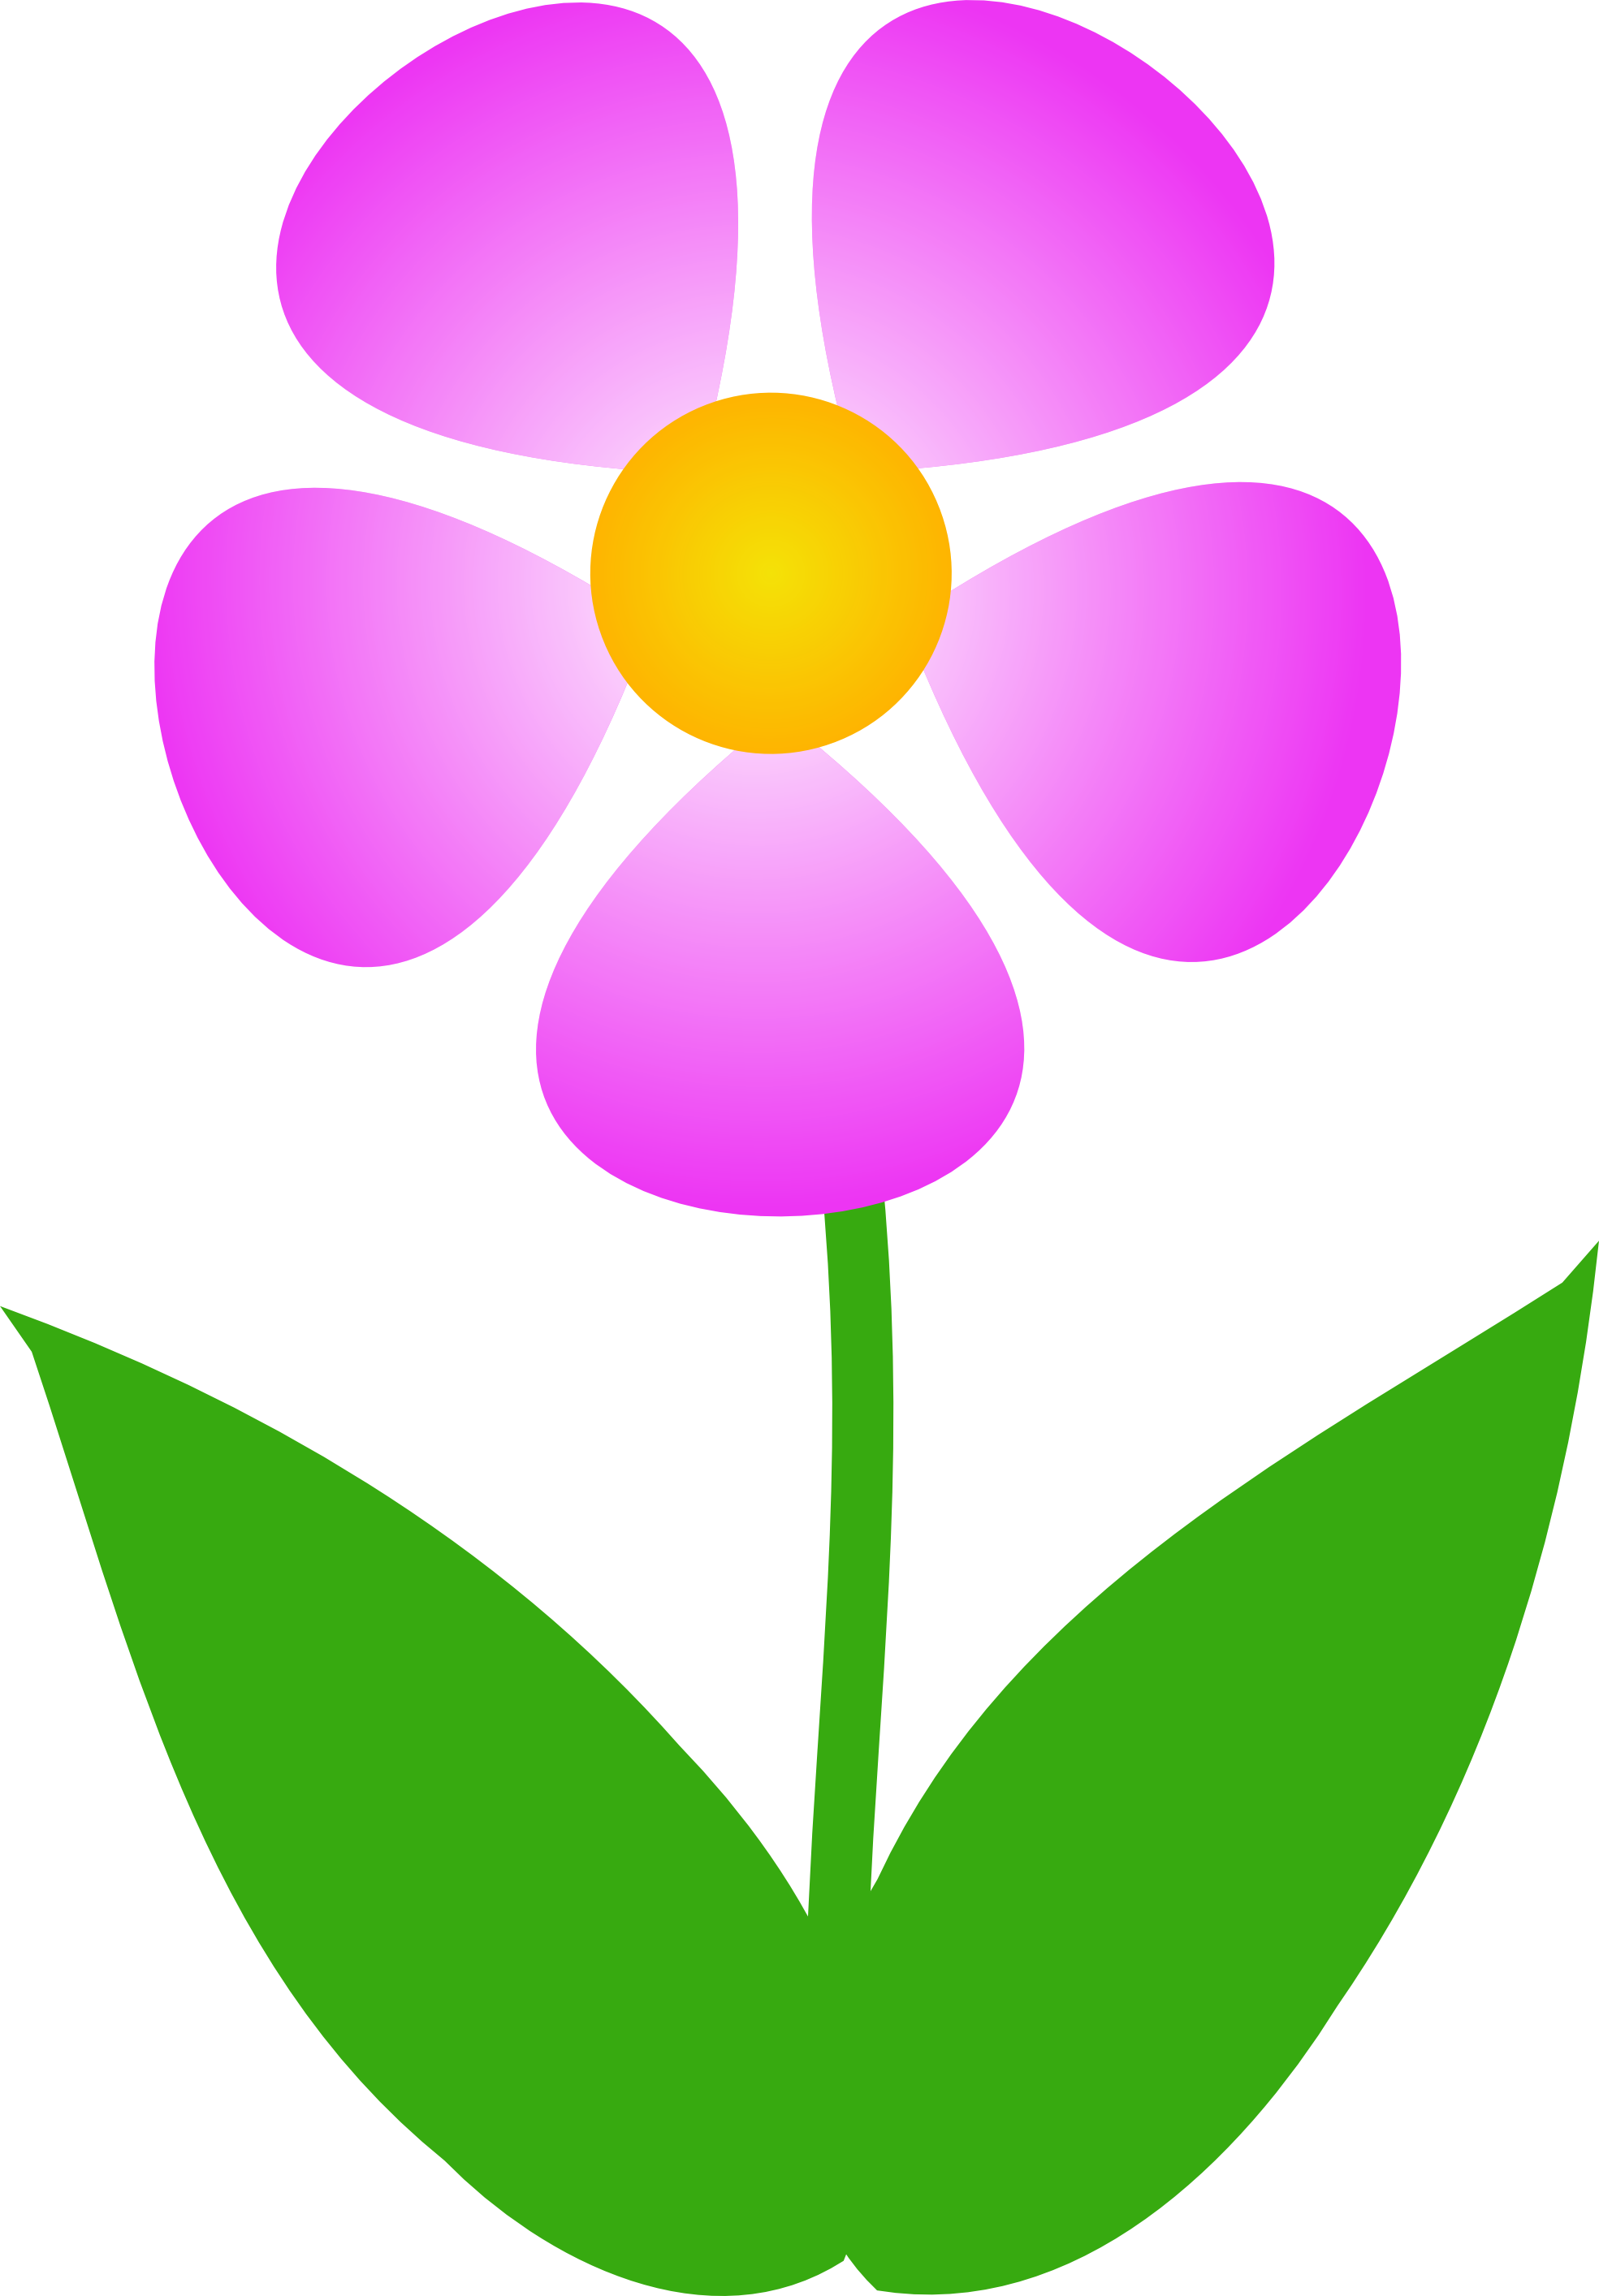 Bouquet png clipart. Flower at getdrawings com